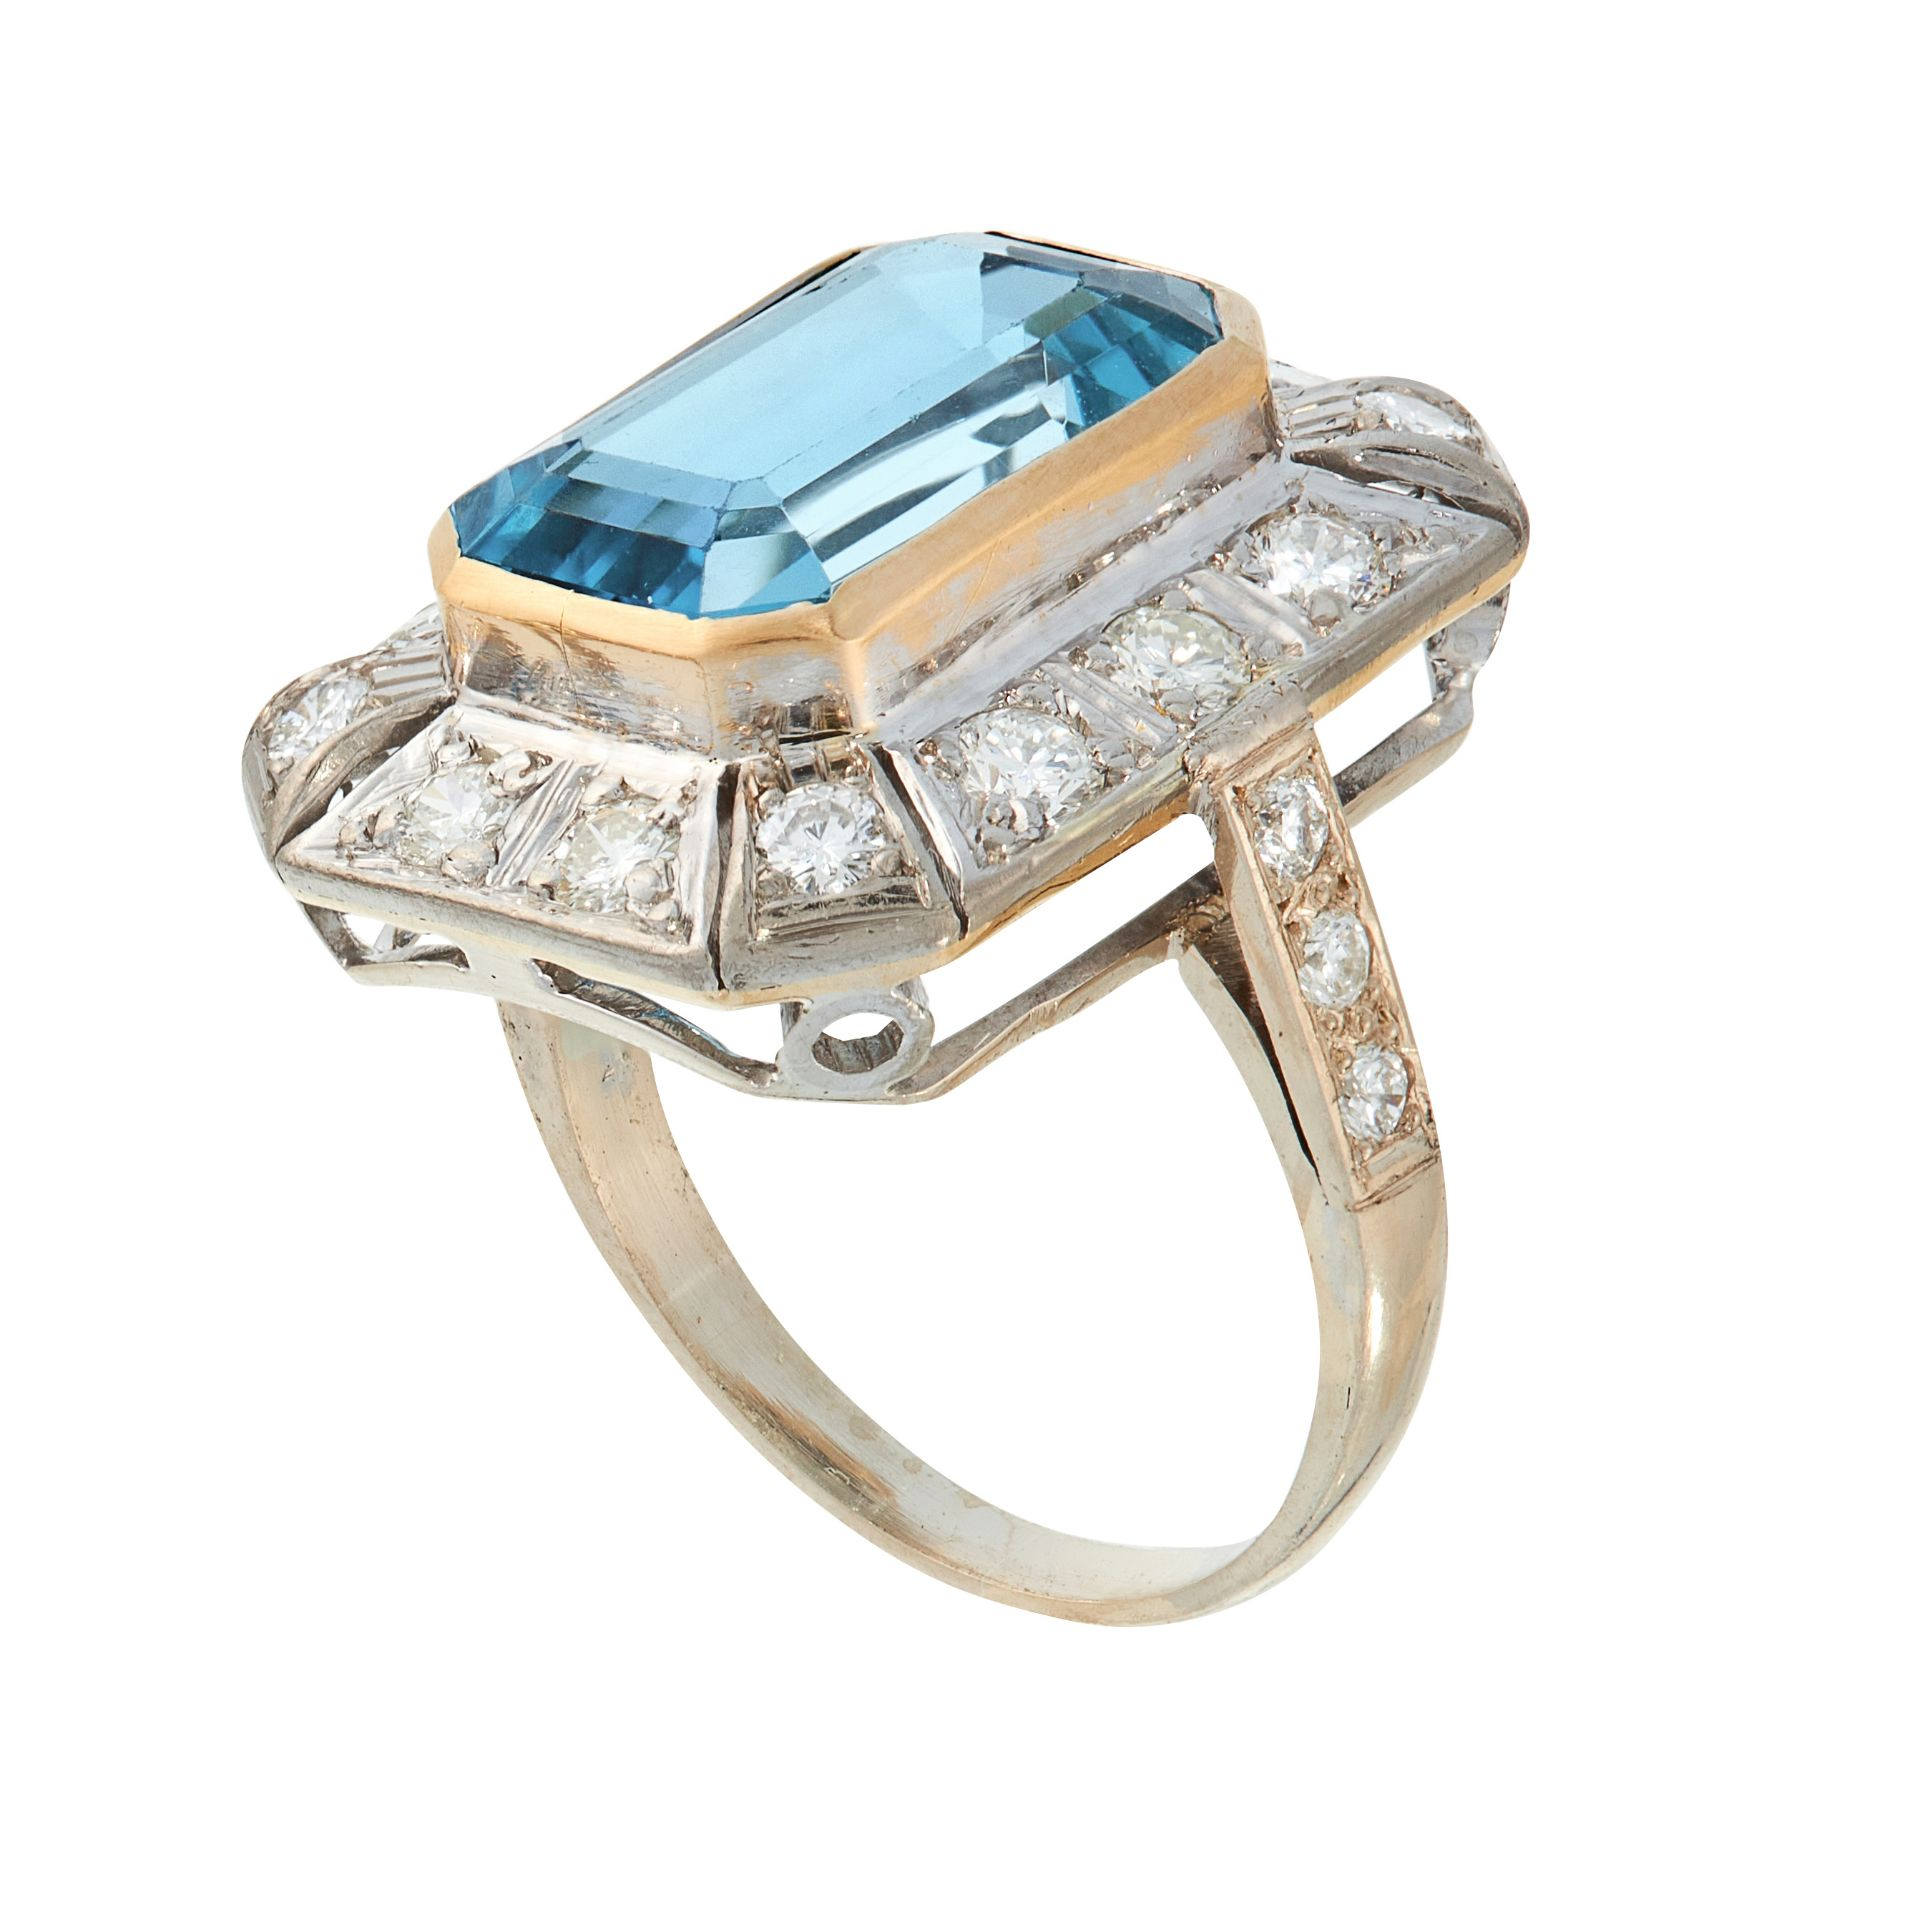 AN AQUAMARINE AND DIAMOND DRESS RING in 18ct white gold and yellow gold, set with an emerald cut - Image 2 of 2